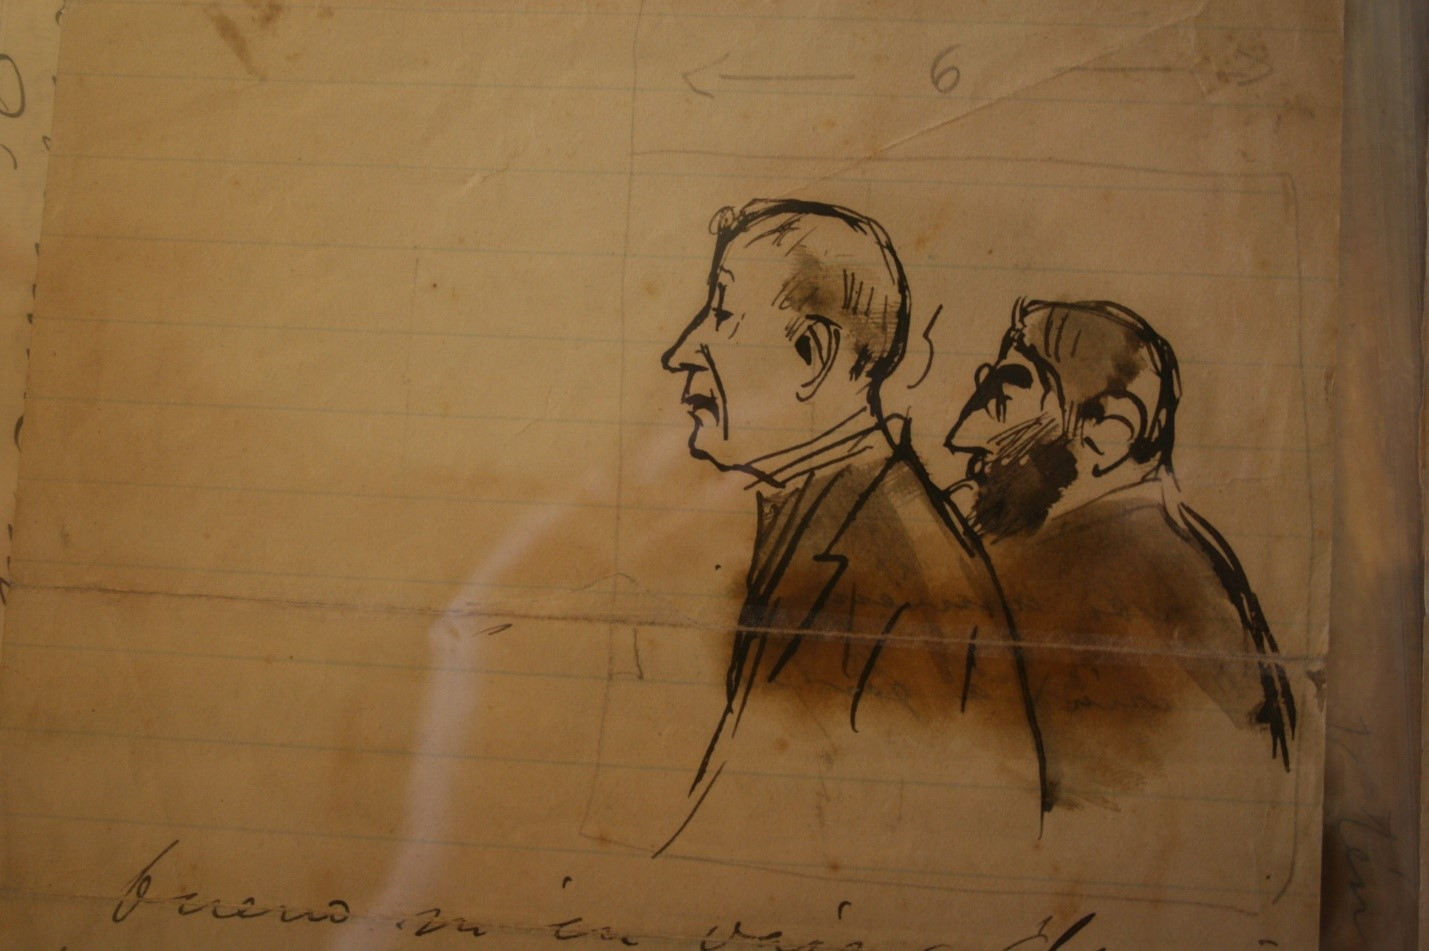 Drawing of Charles Deering and Ramon Casas by Casas in one of his letters during their art collecting travels throughout Europe ca. 1910s